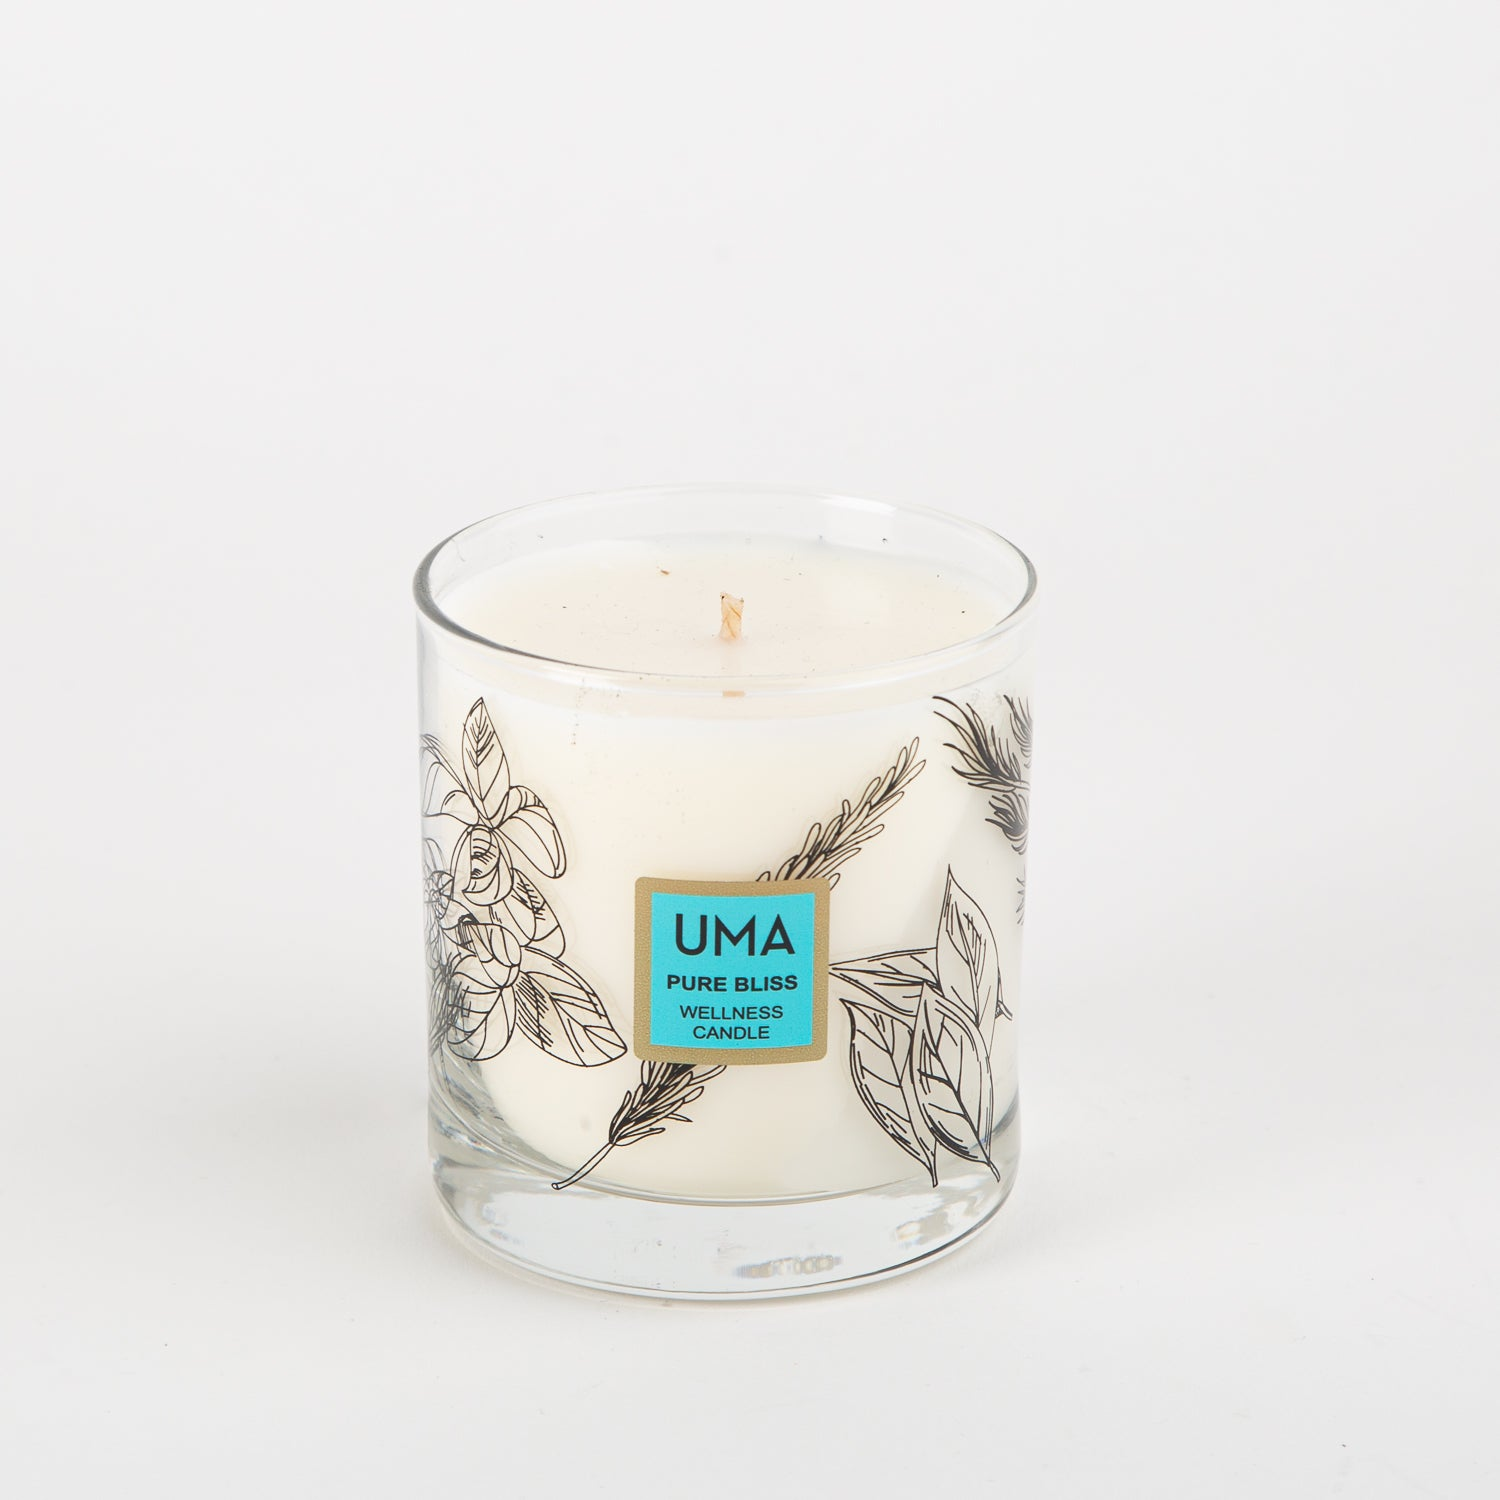 pure bliss wellness candle by UMA at Secret Location Concept Store